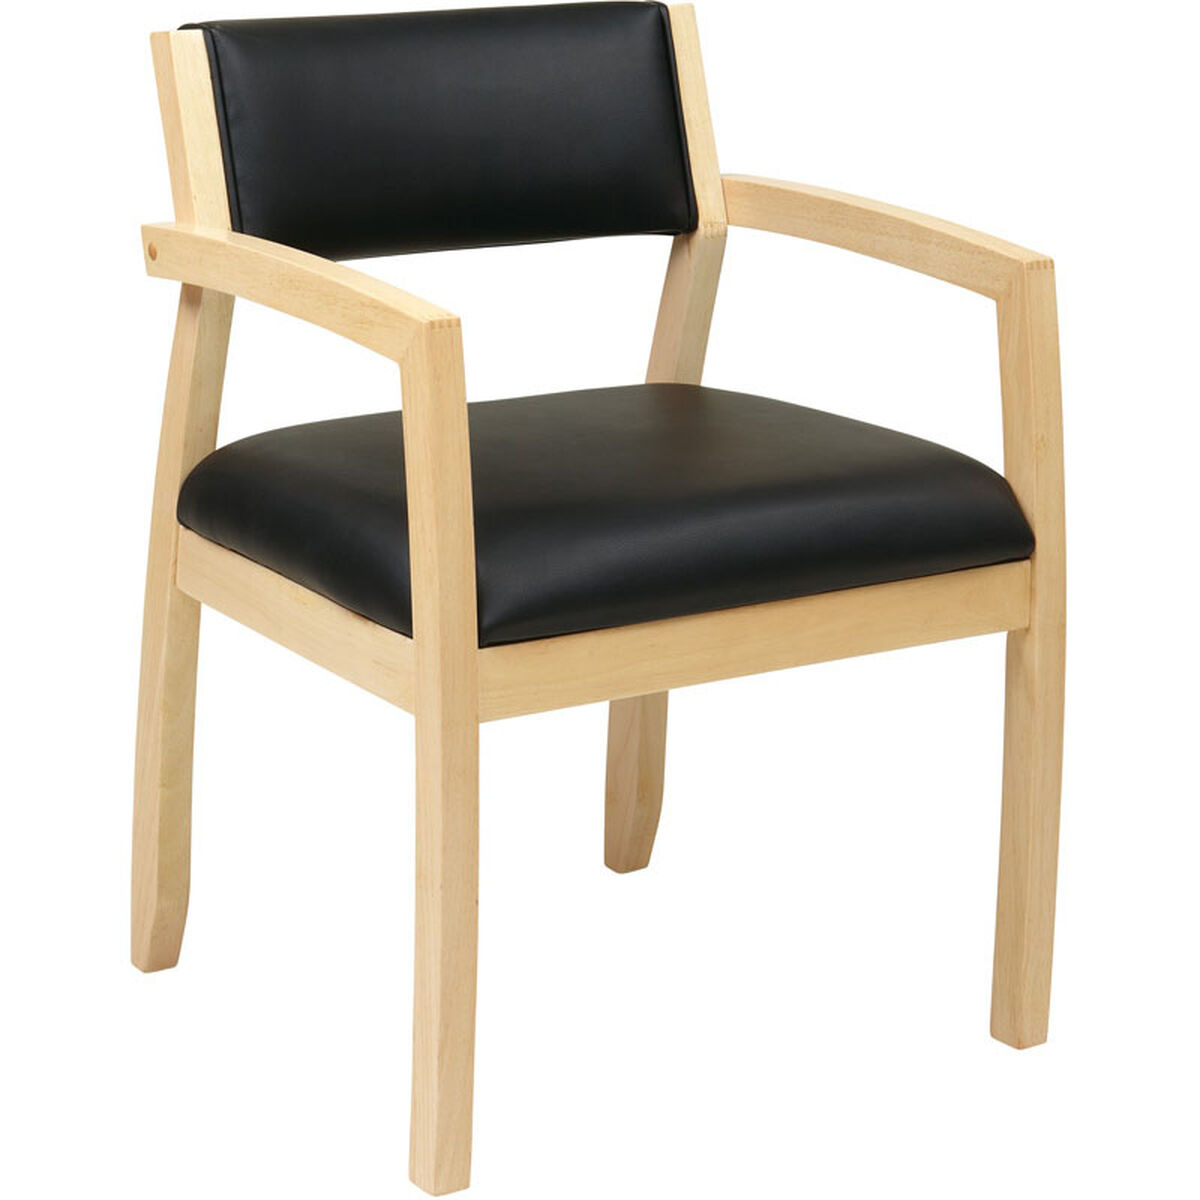 Our Osp Furniture Napa Bonded Leather Guest Chair With Upholstered Back Maple Is On